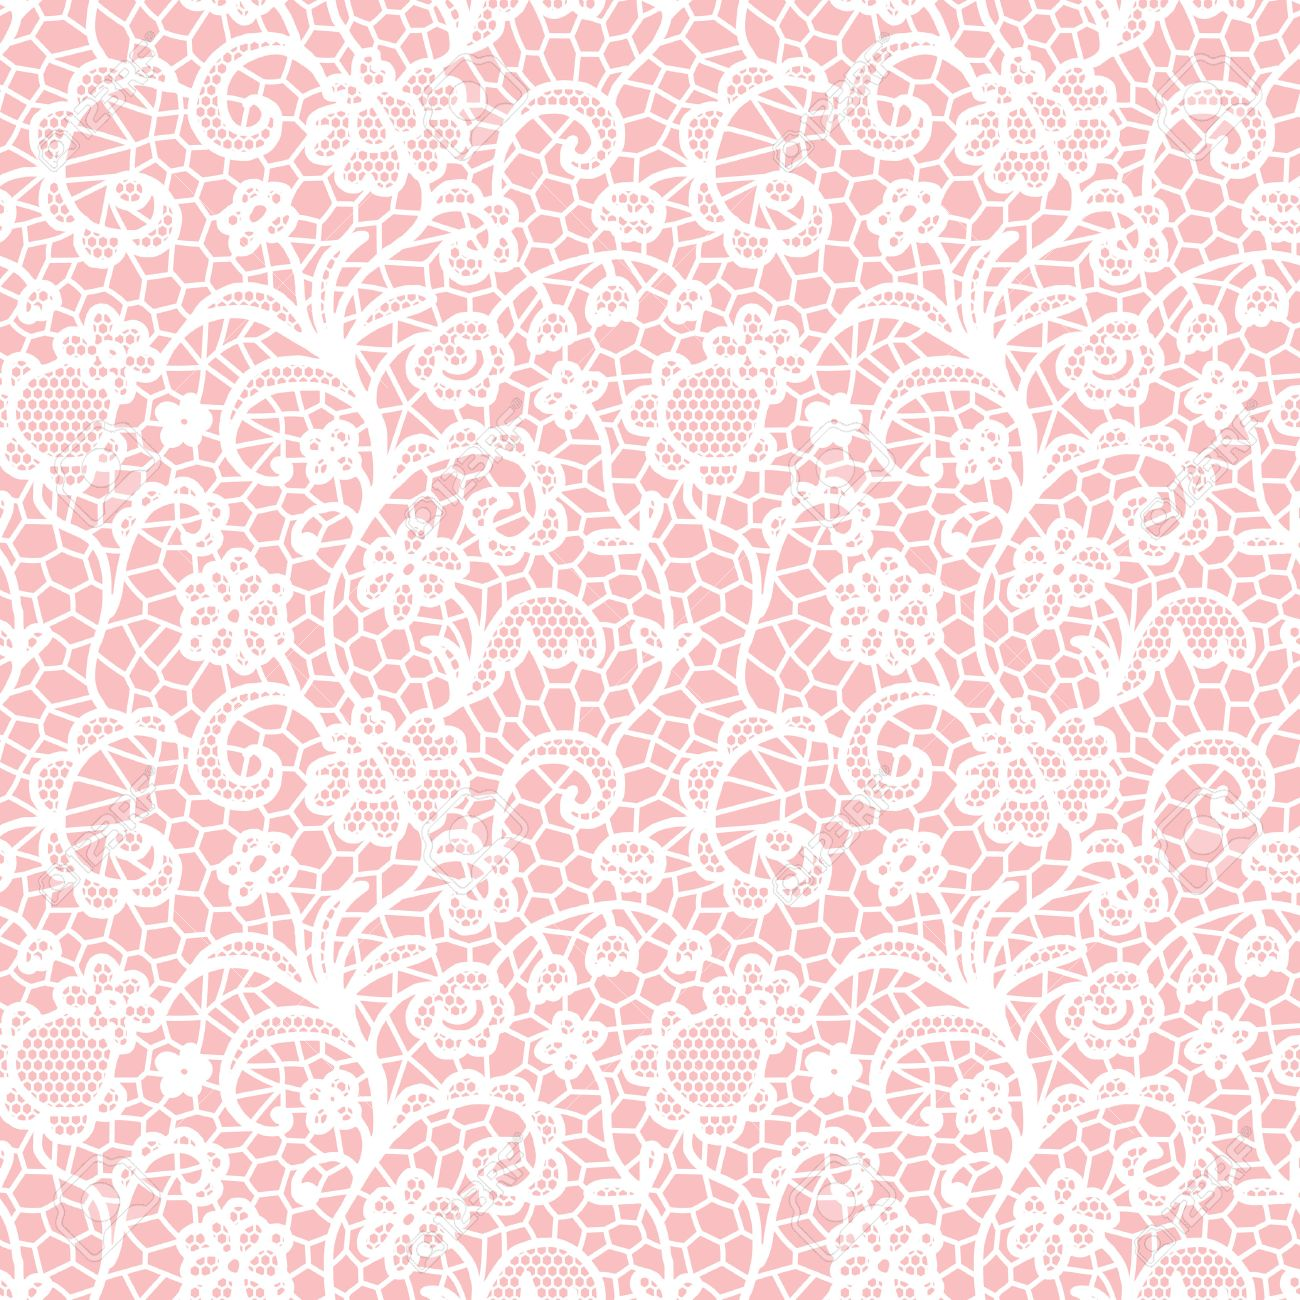 White lace seamless pattern with flowers on pink background - 59729025